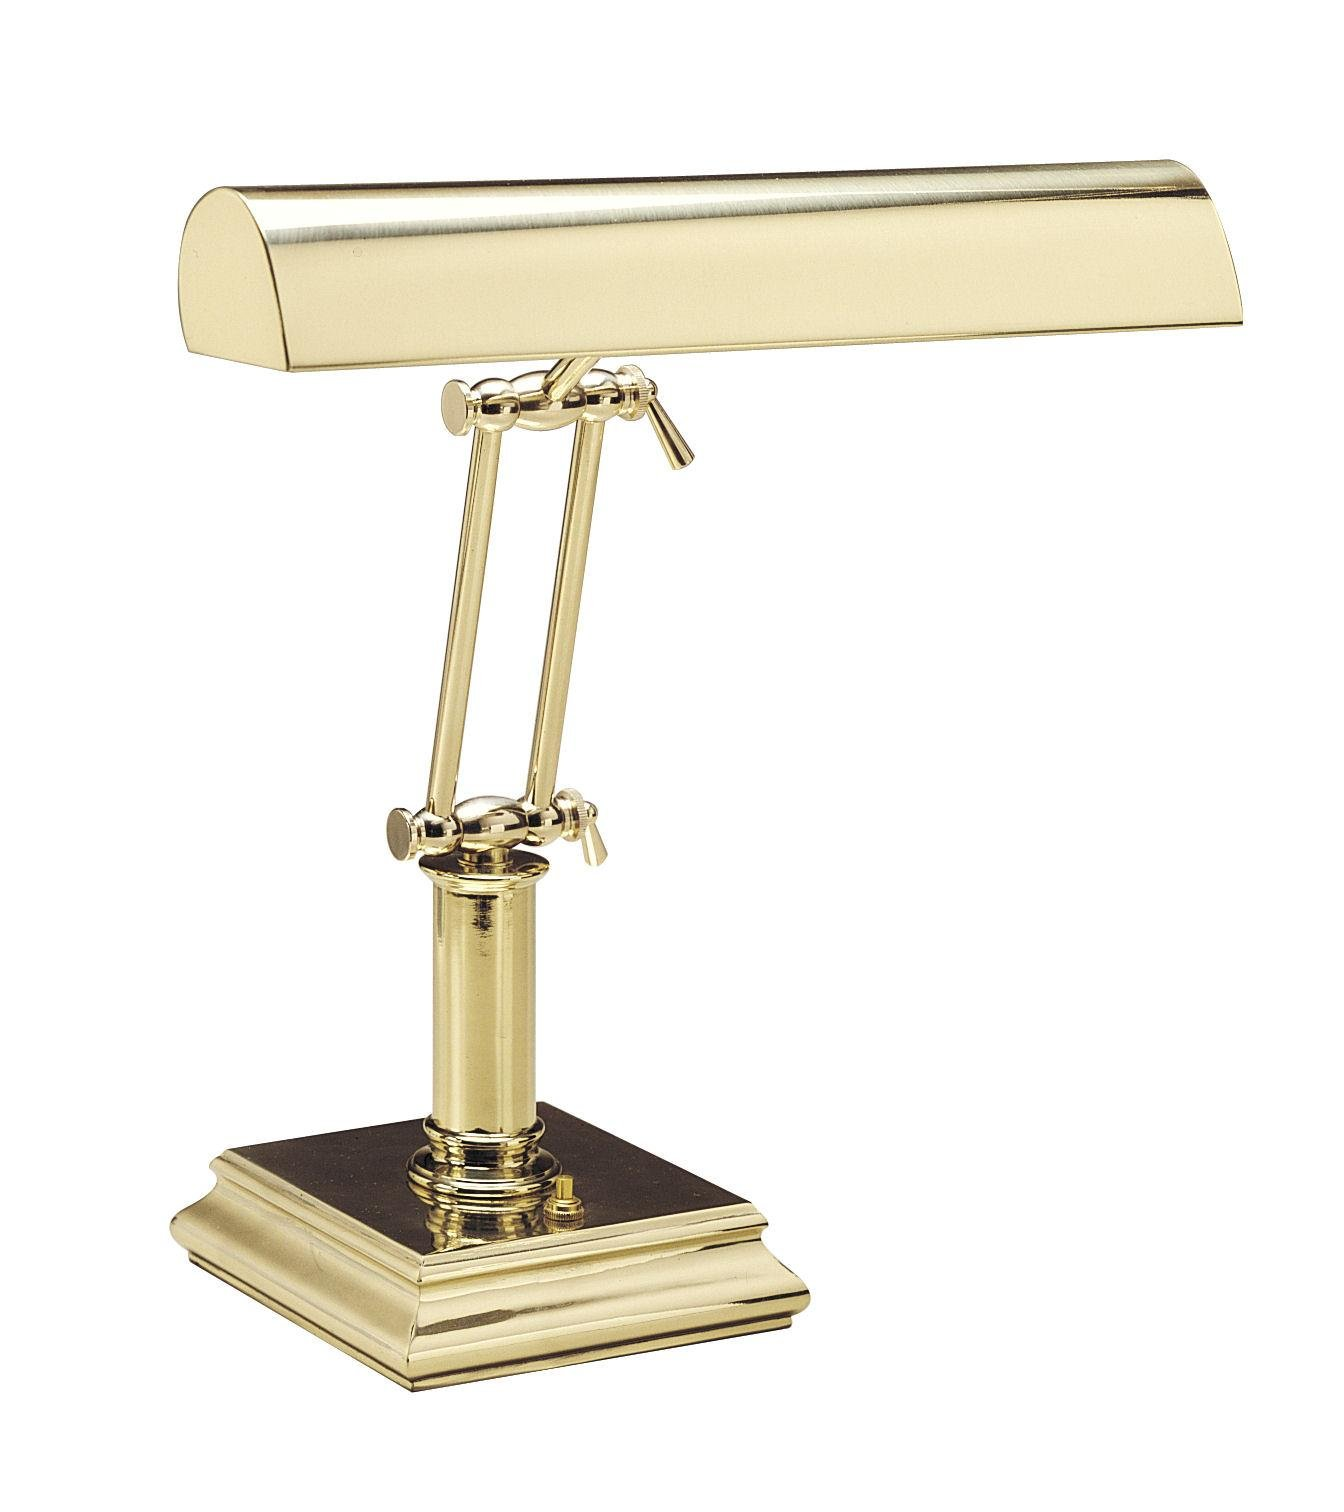 House of Troy P14-201 14-Inch Portable Desk/Piano Lamp Polished Brass